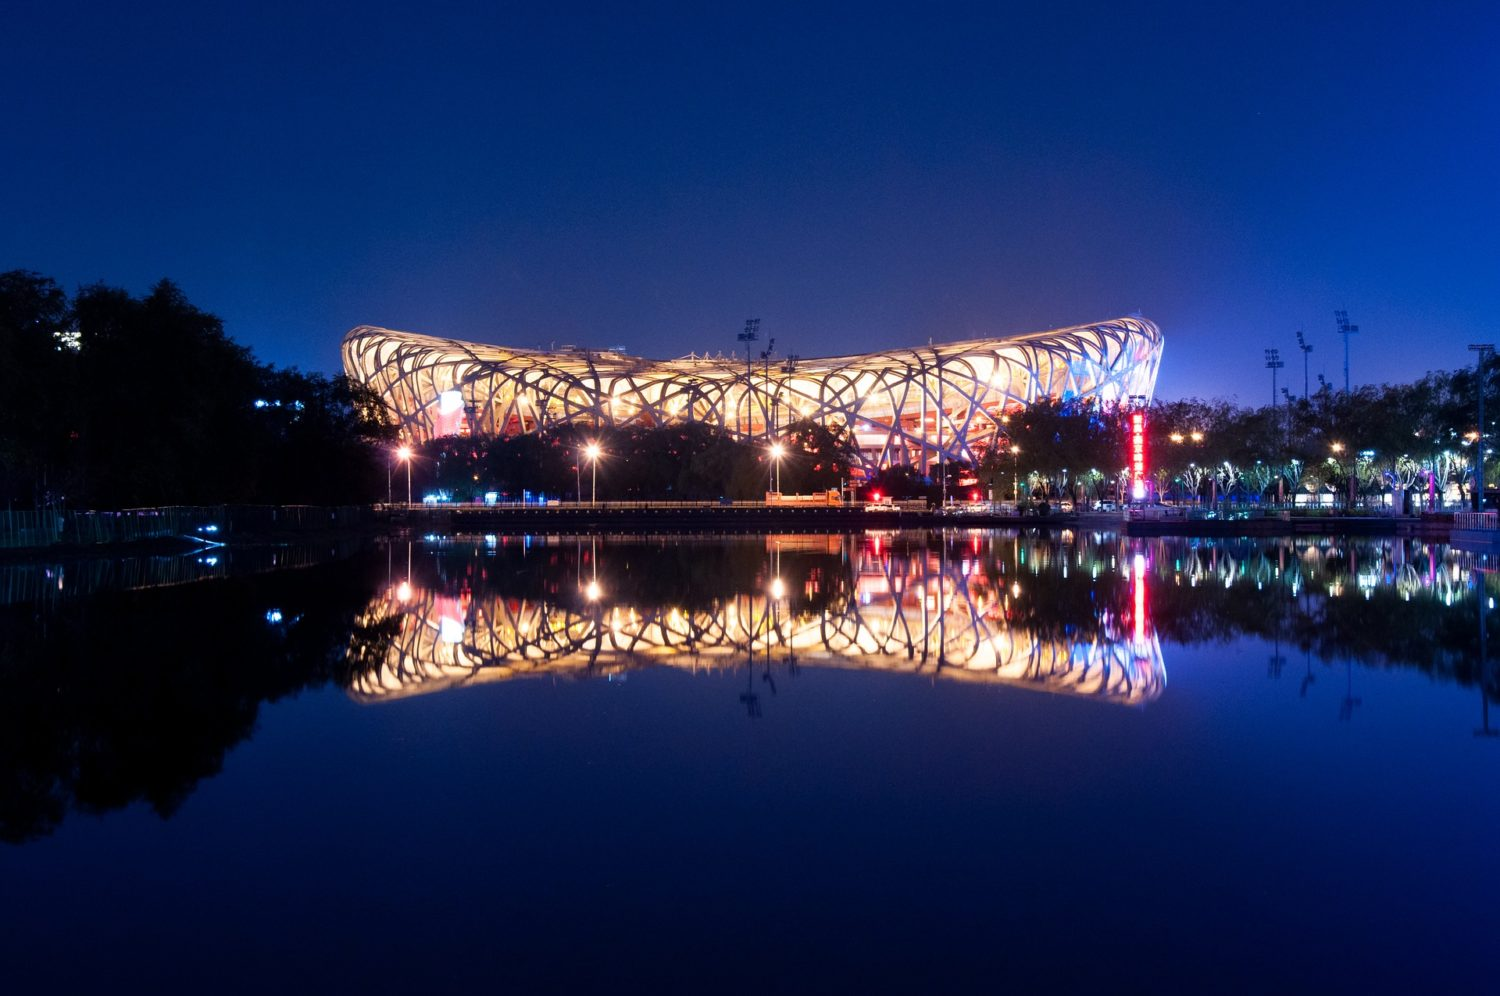 The Bird's Nest Stadium in Beijing, China at night